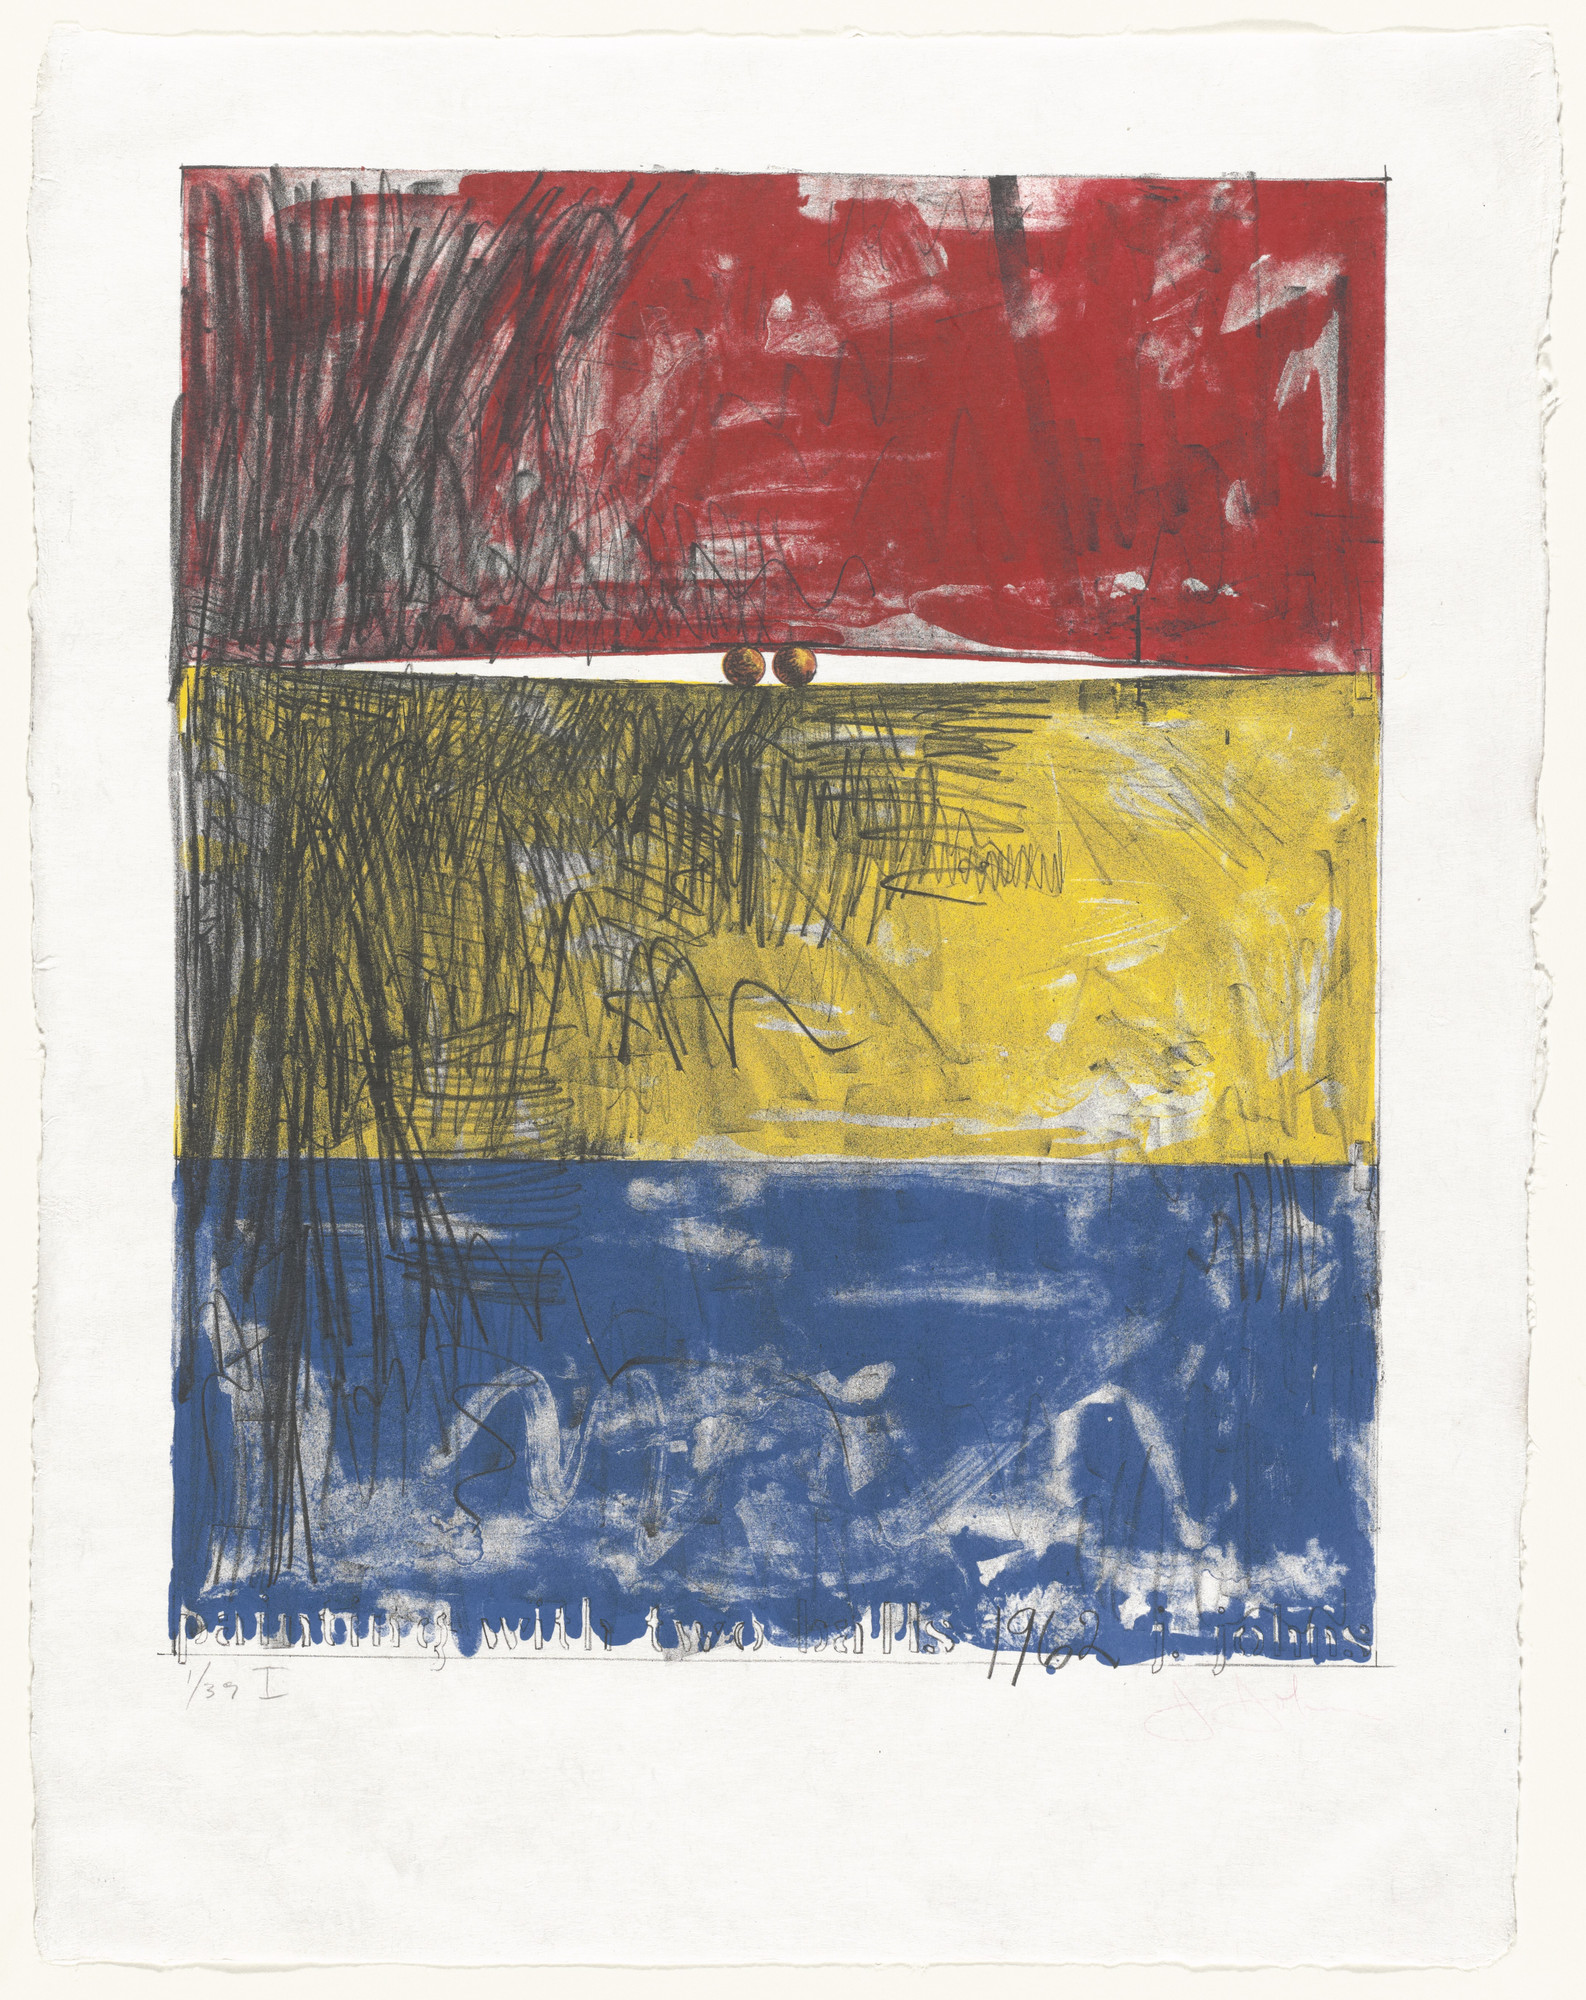 Jasper Johns. Painting with Two Balls I. 1962